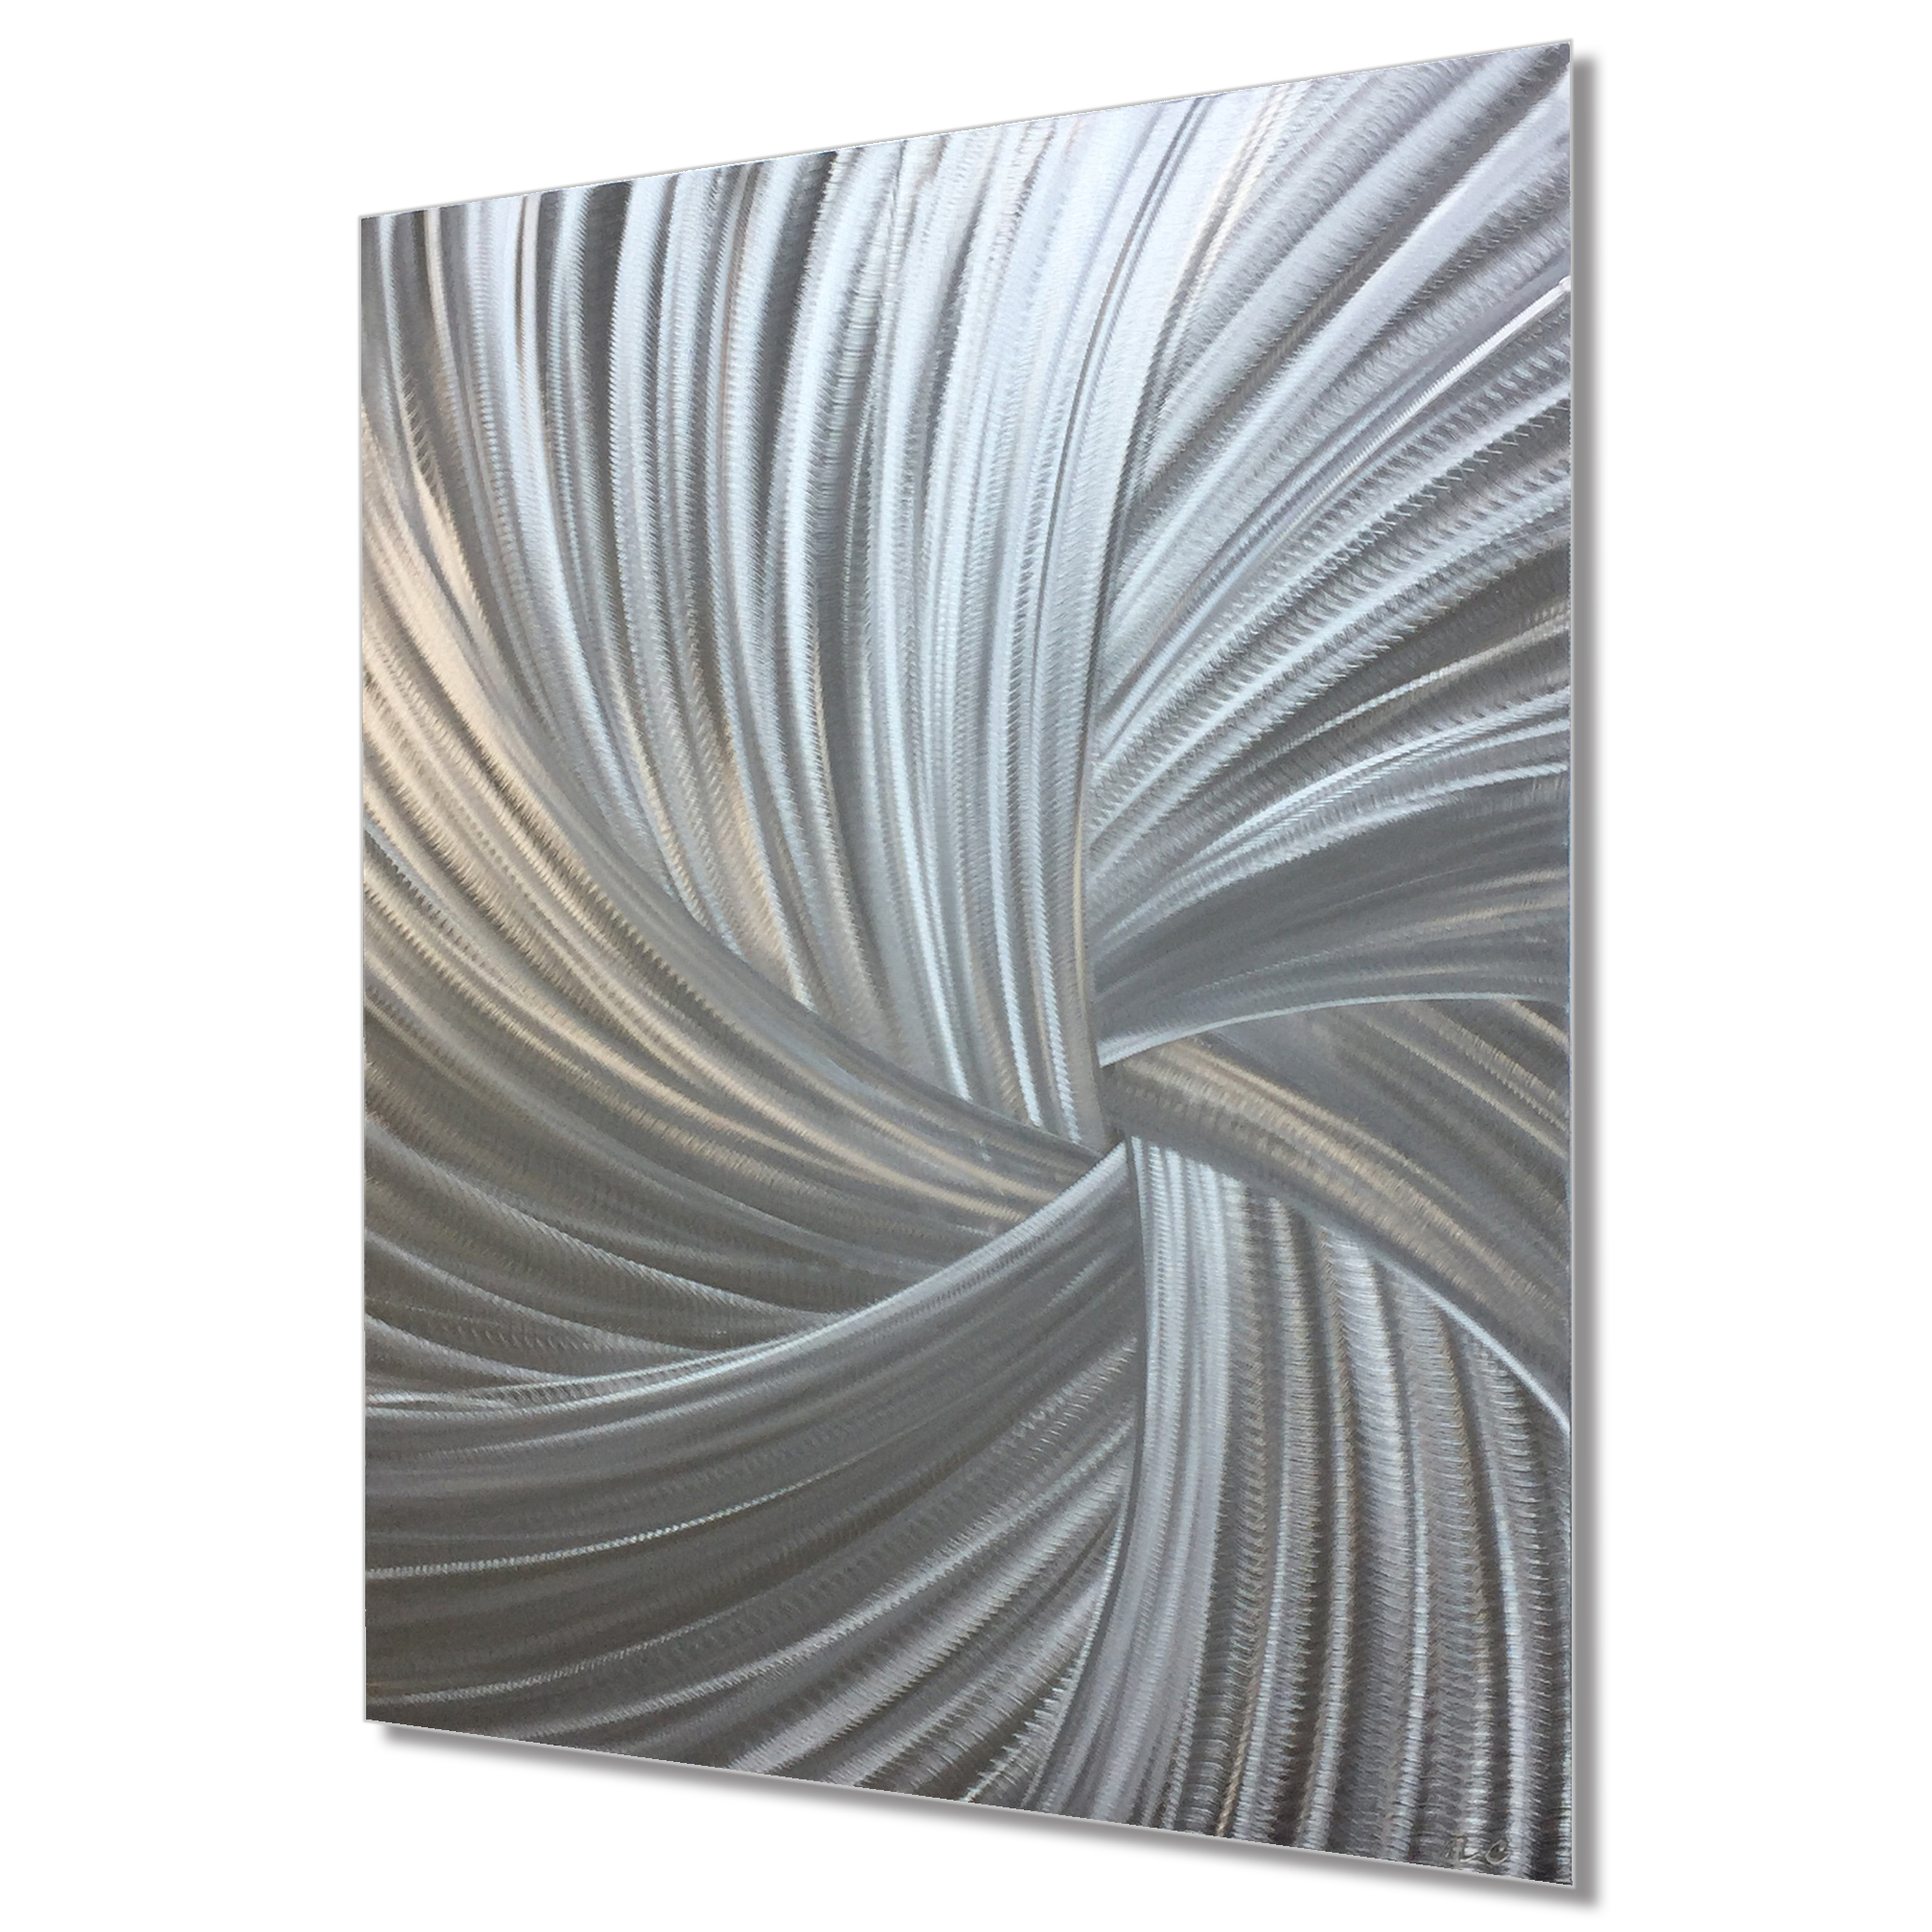 Starburst Metal Art 'Within the Folds' - Modern Artwork on Natural Aluminum - Image 2